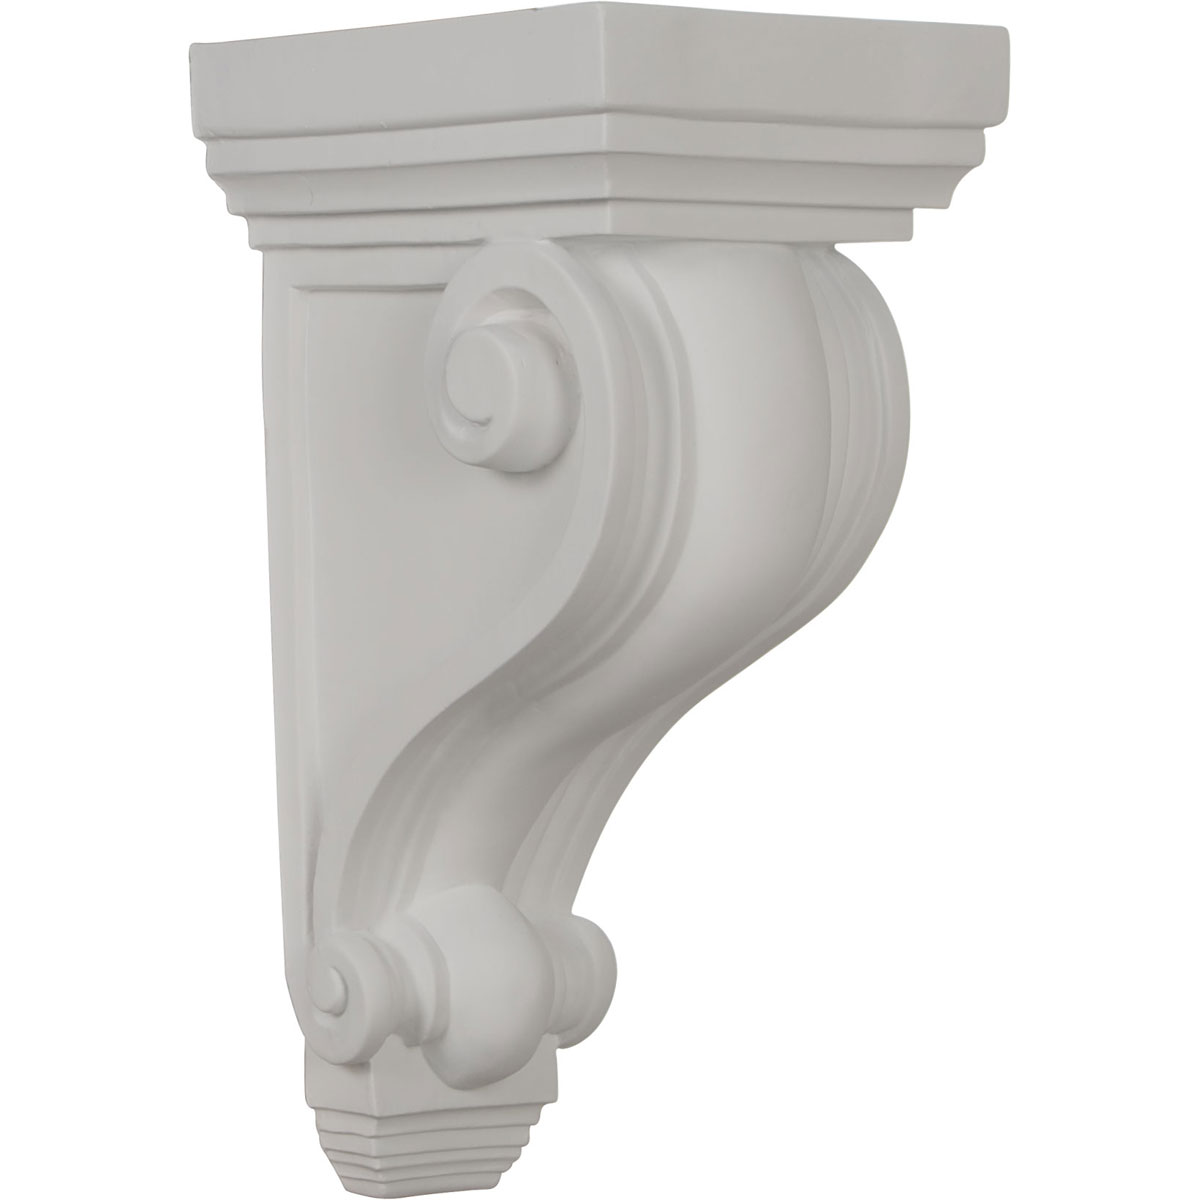 woods of corbels for decorative granite custom awesome cabinetry the countertops out accessories decor